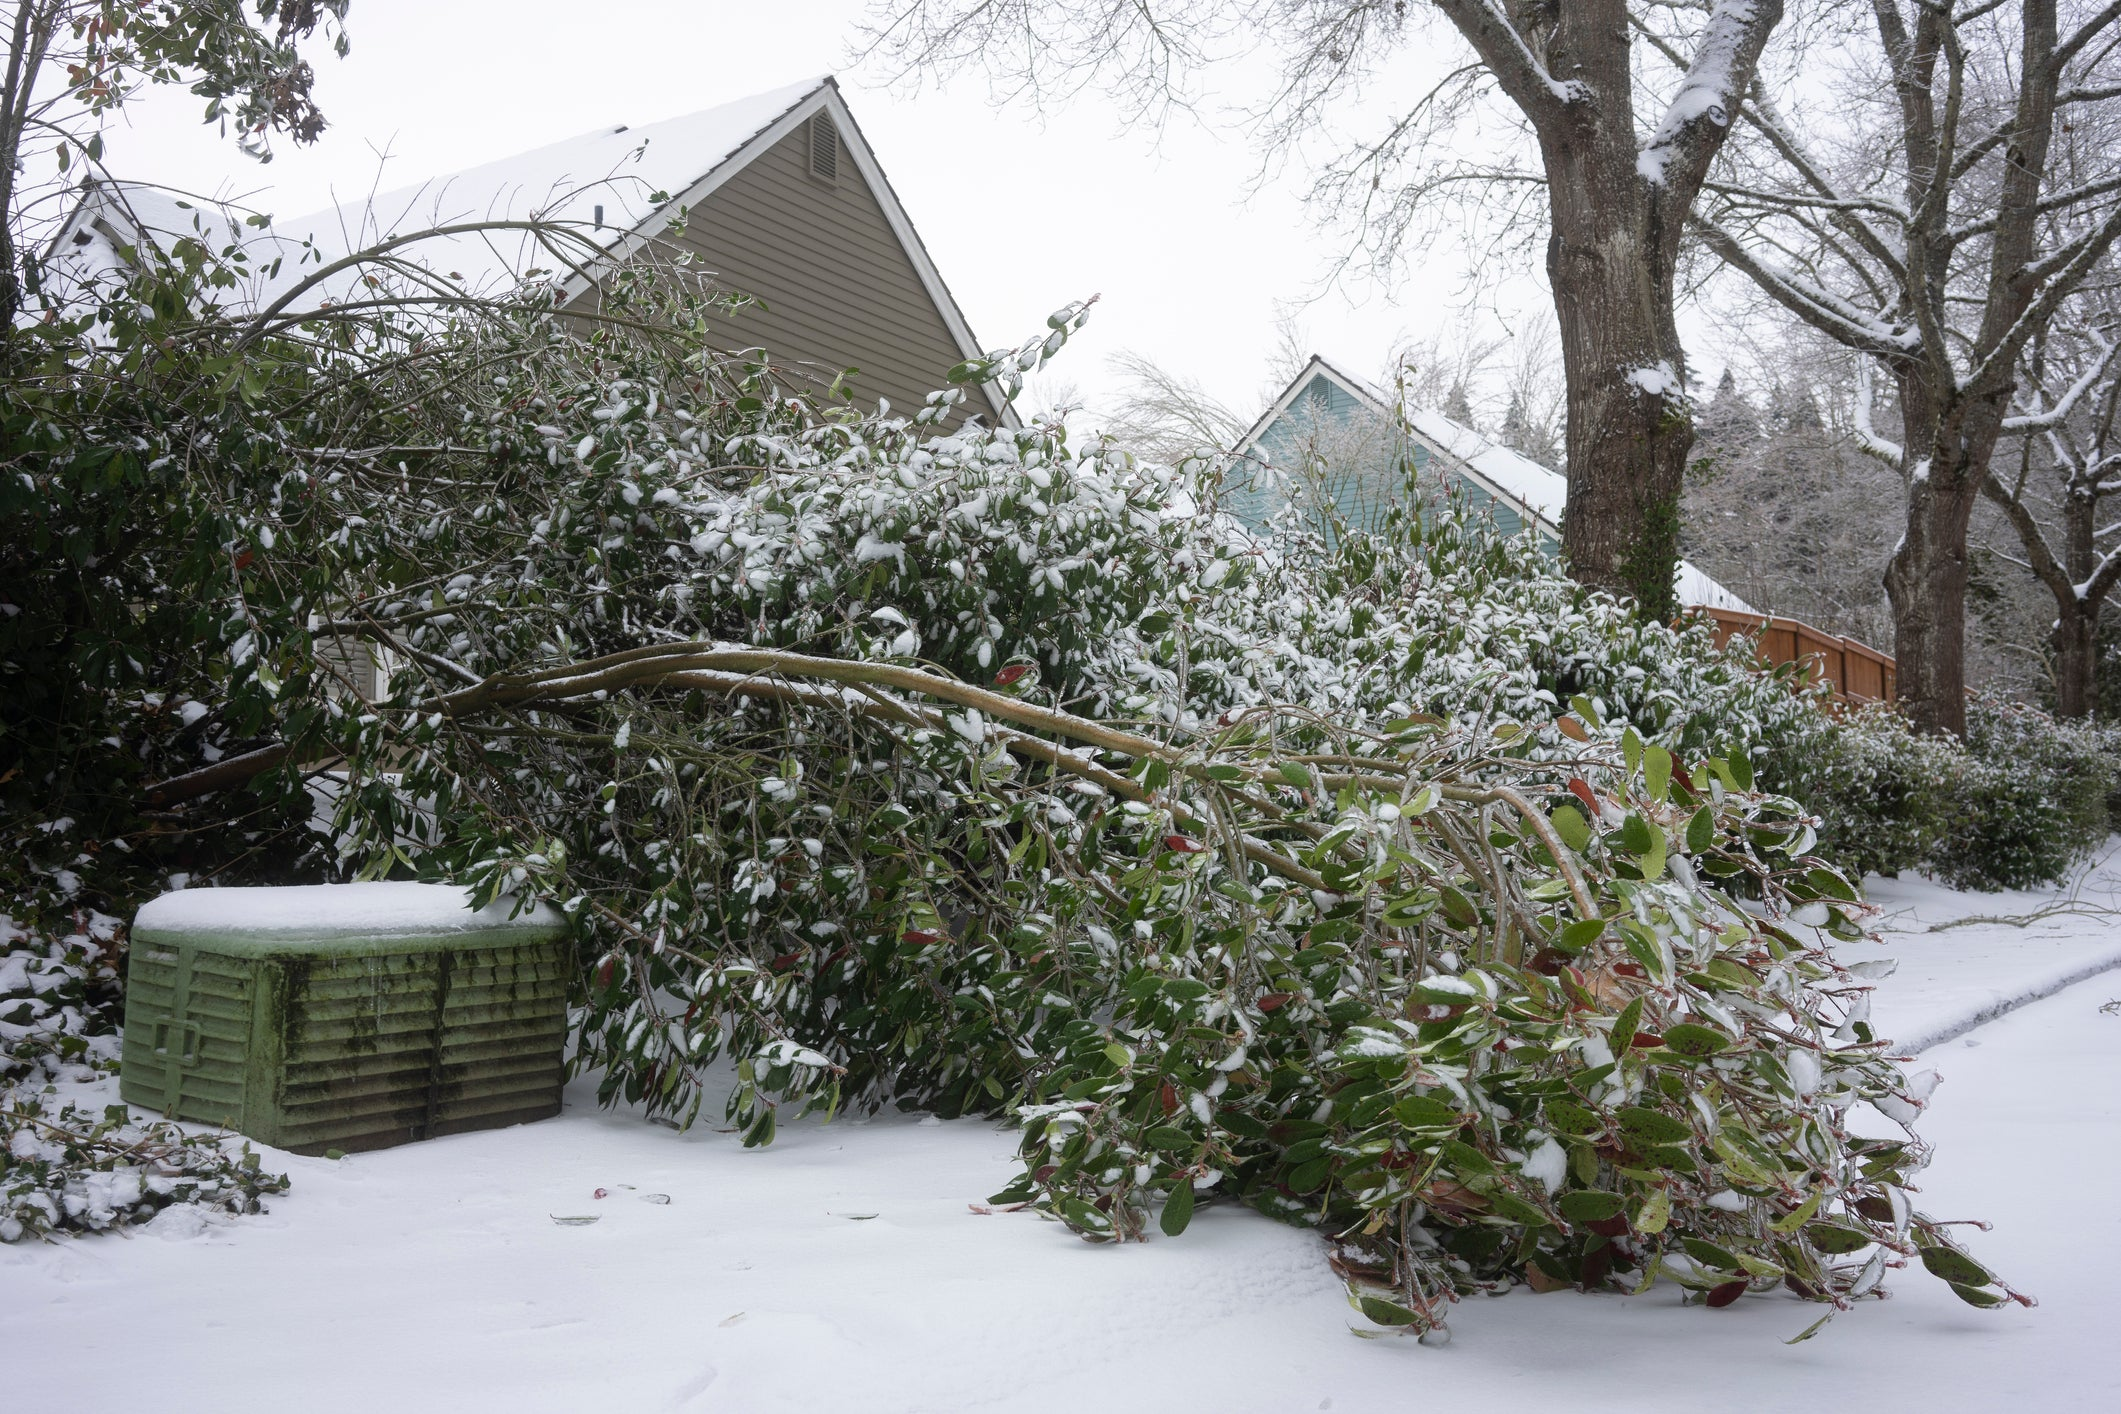 A downed tree after a winter storm.